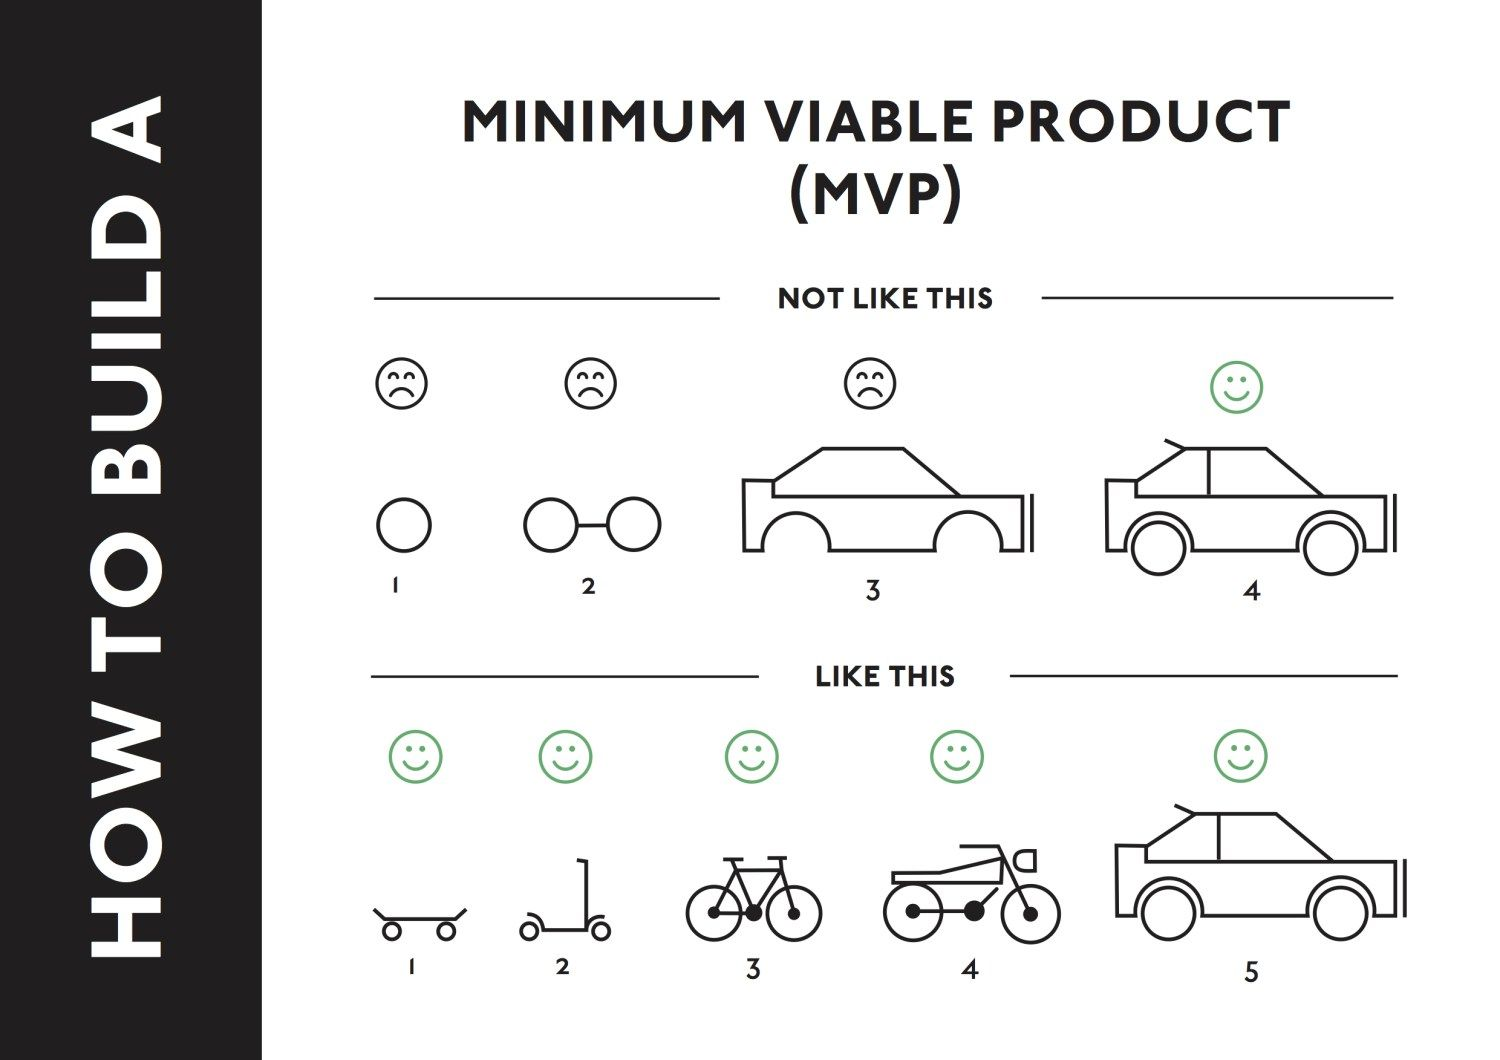 building minimal viable products - HD1500×1060